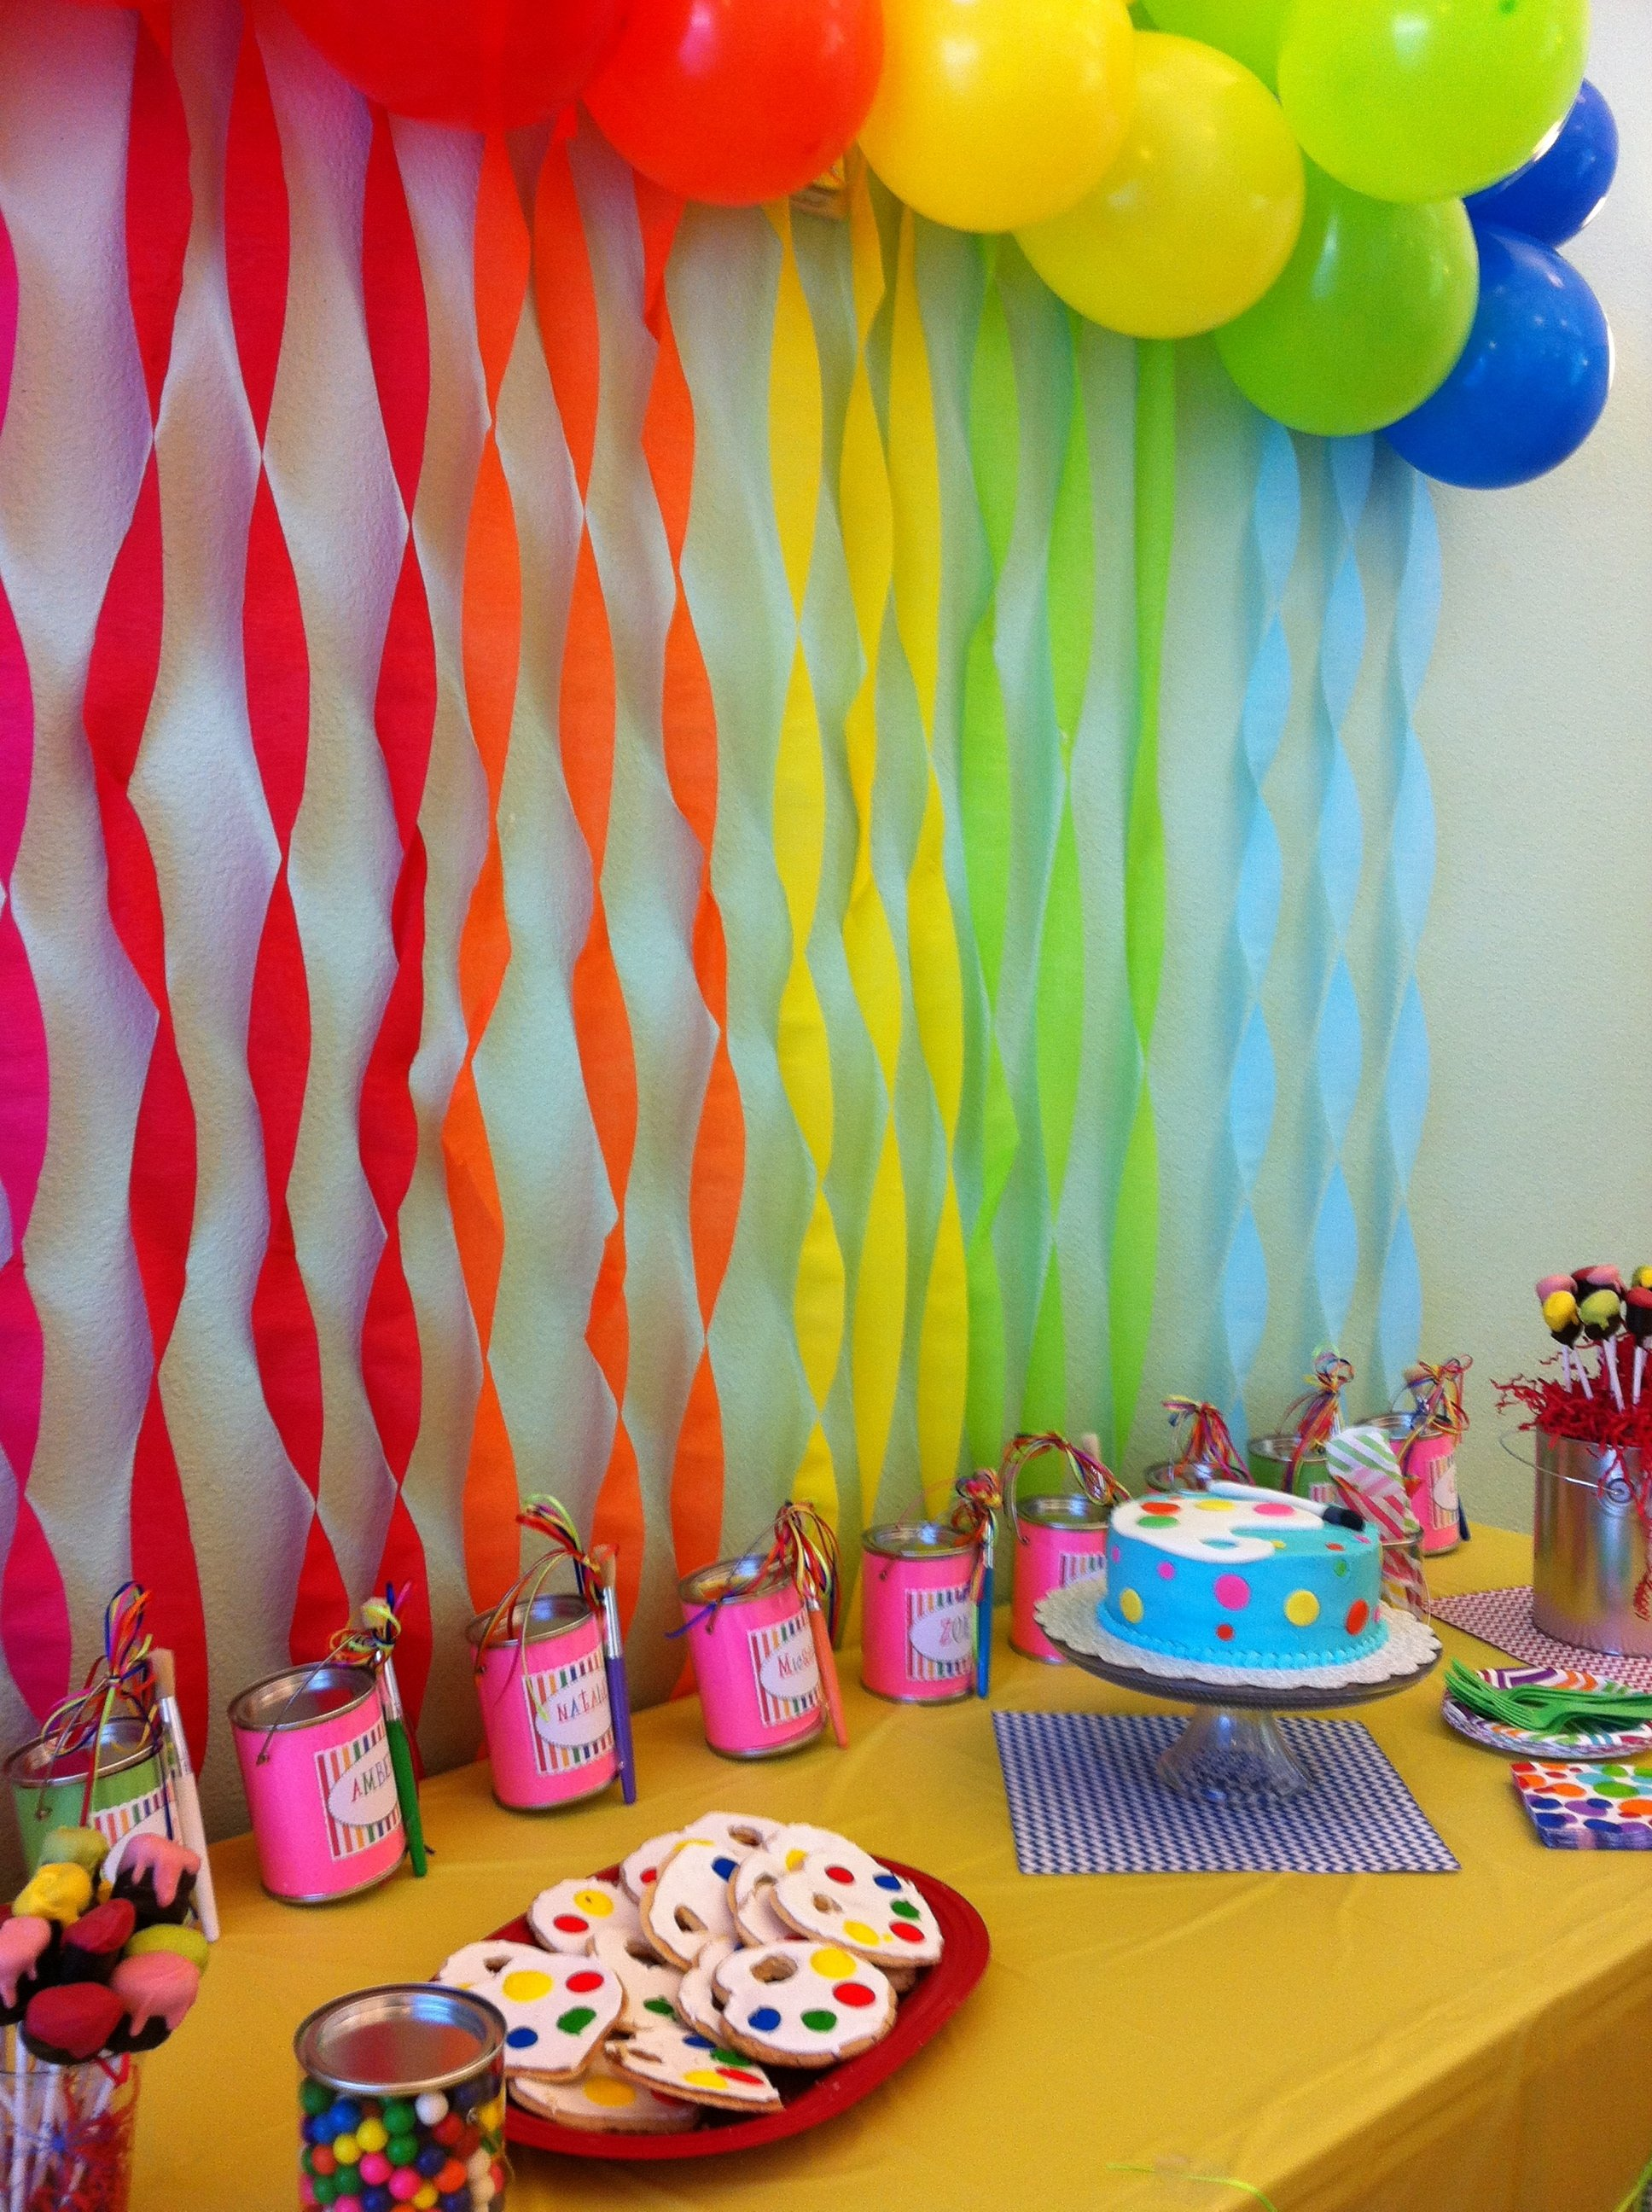 10 Most Recommended 10 Year Birthday Party Ideas 2019